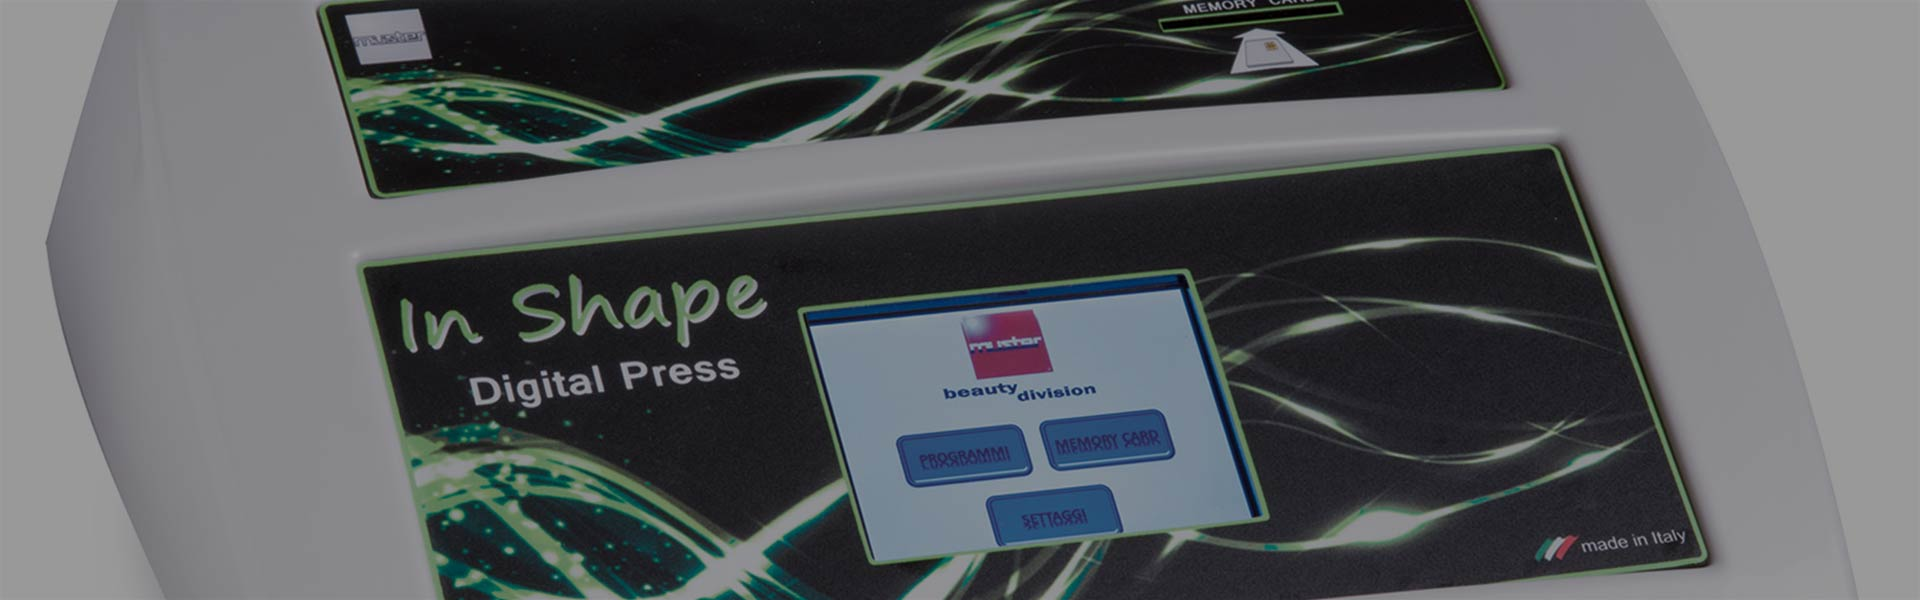 In Shape Digital Press - A professional device for